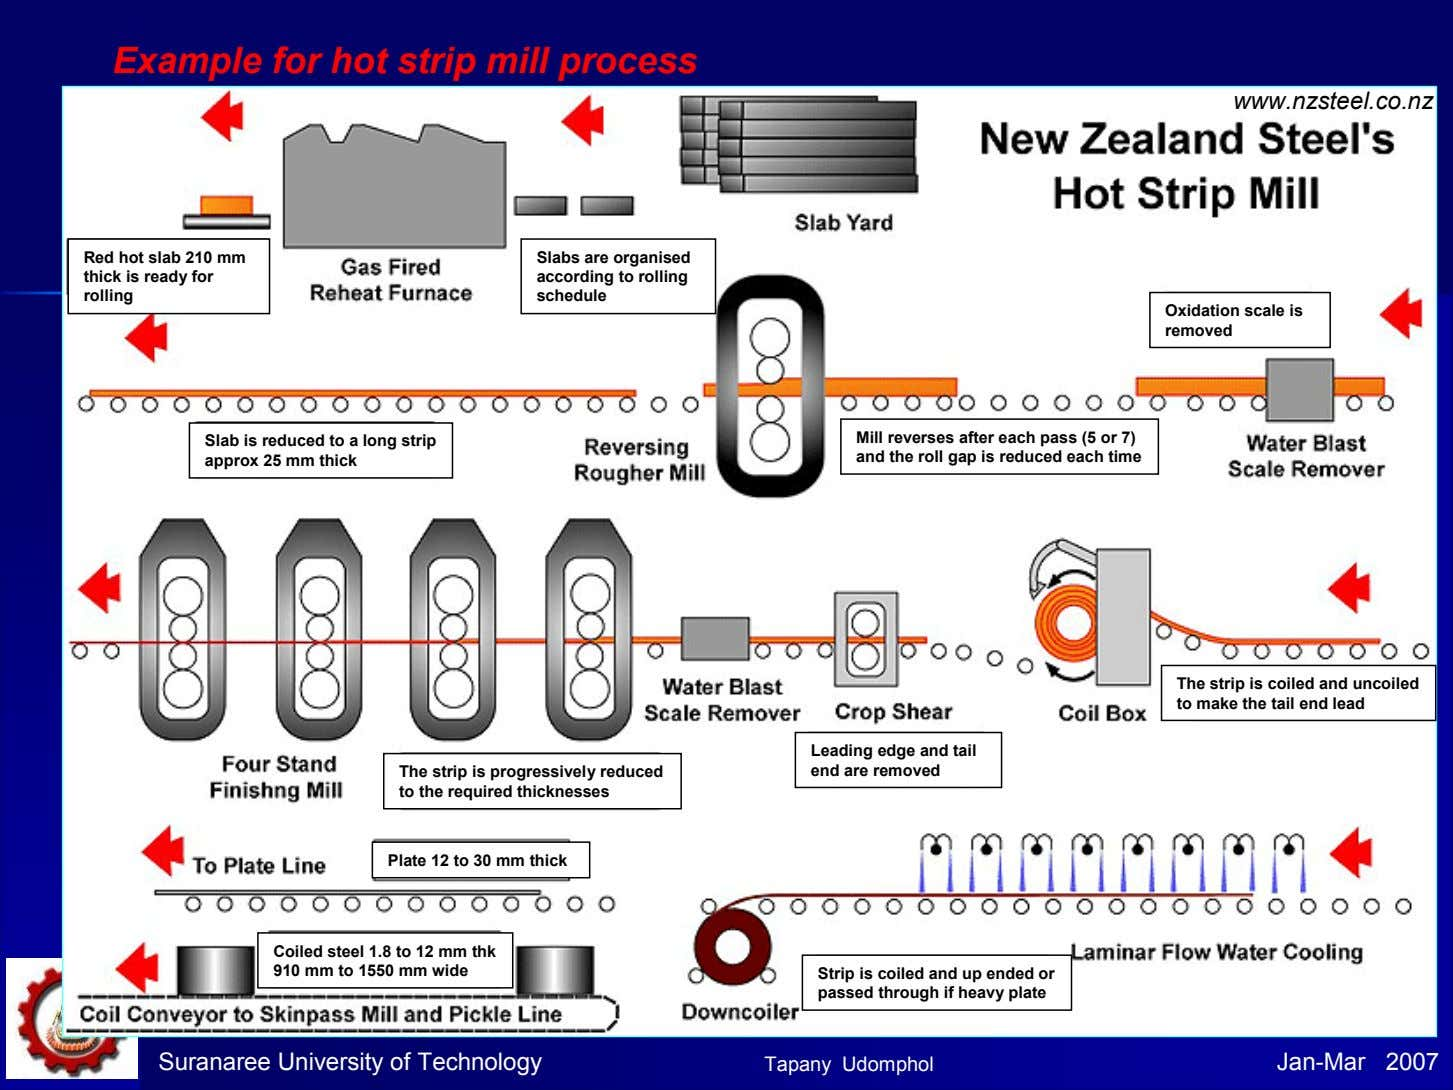 Example for hot strip mill process www.nzsteel.co.nz Red hot slab 210 mm thick is ready